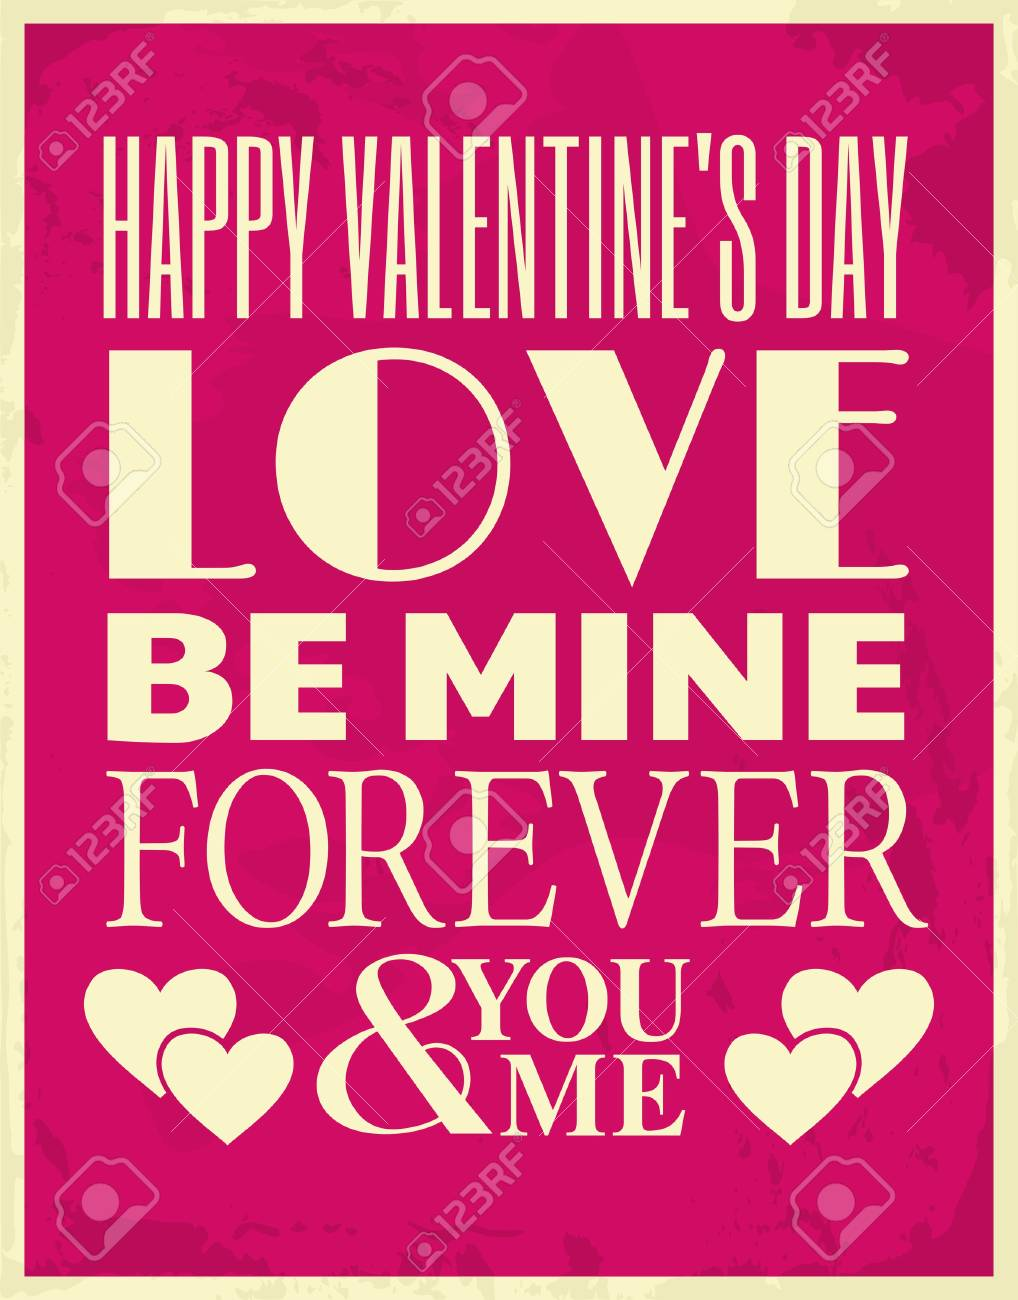 Valentine s Day Greeting Card Stock Vector - 17279054